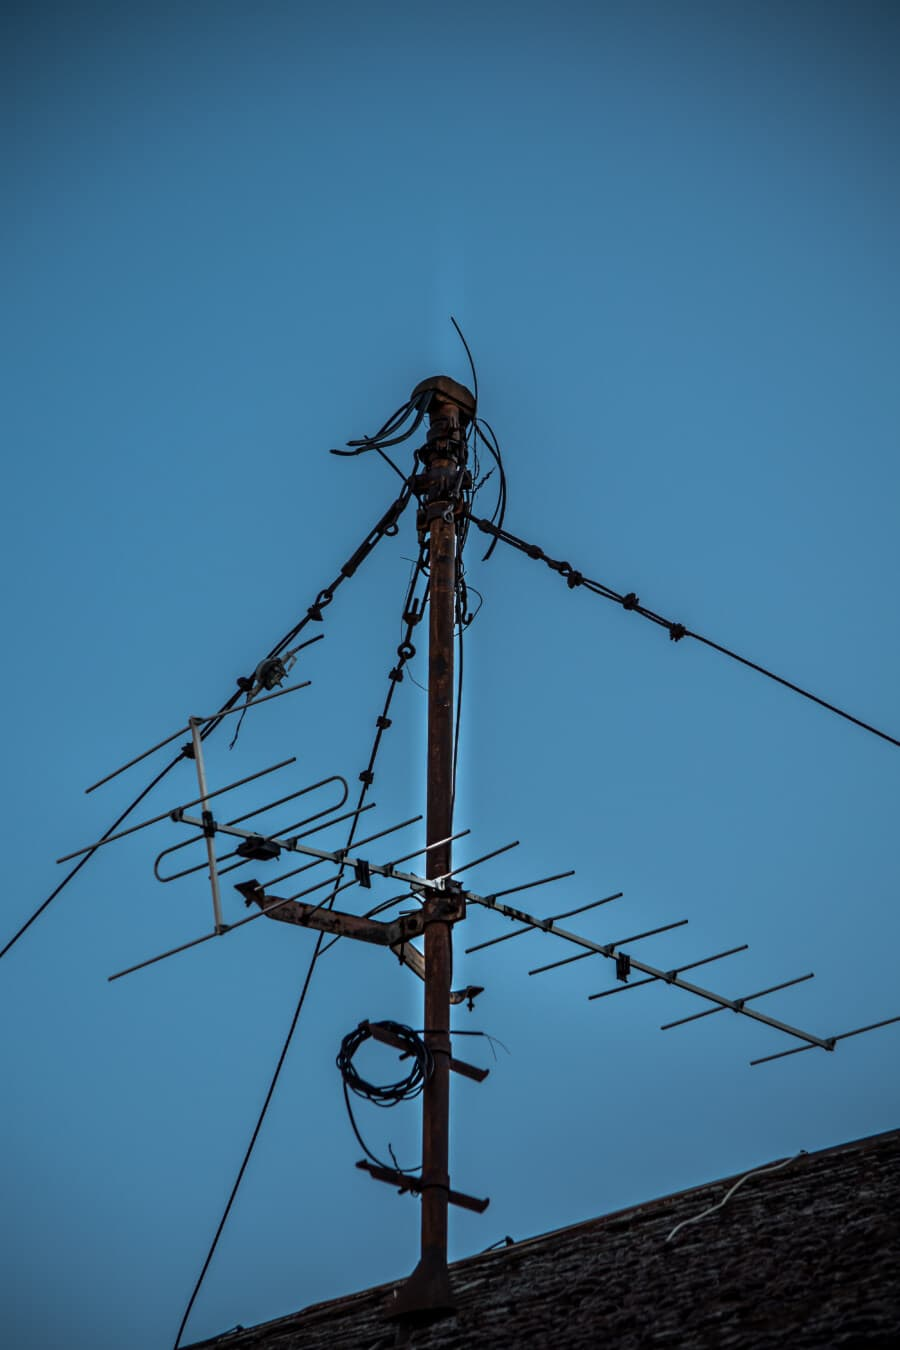 rooftop, antenna, television, wires, receiver, pole, cable, voltage, electricity, wire